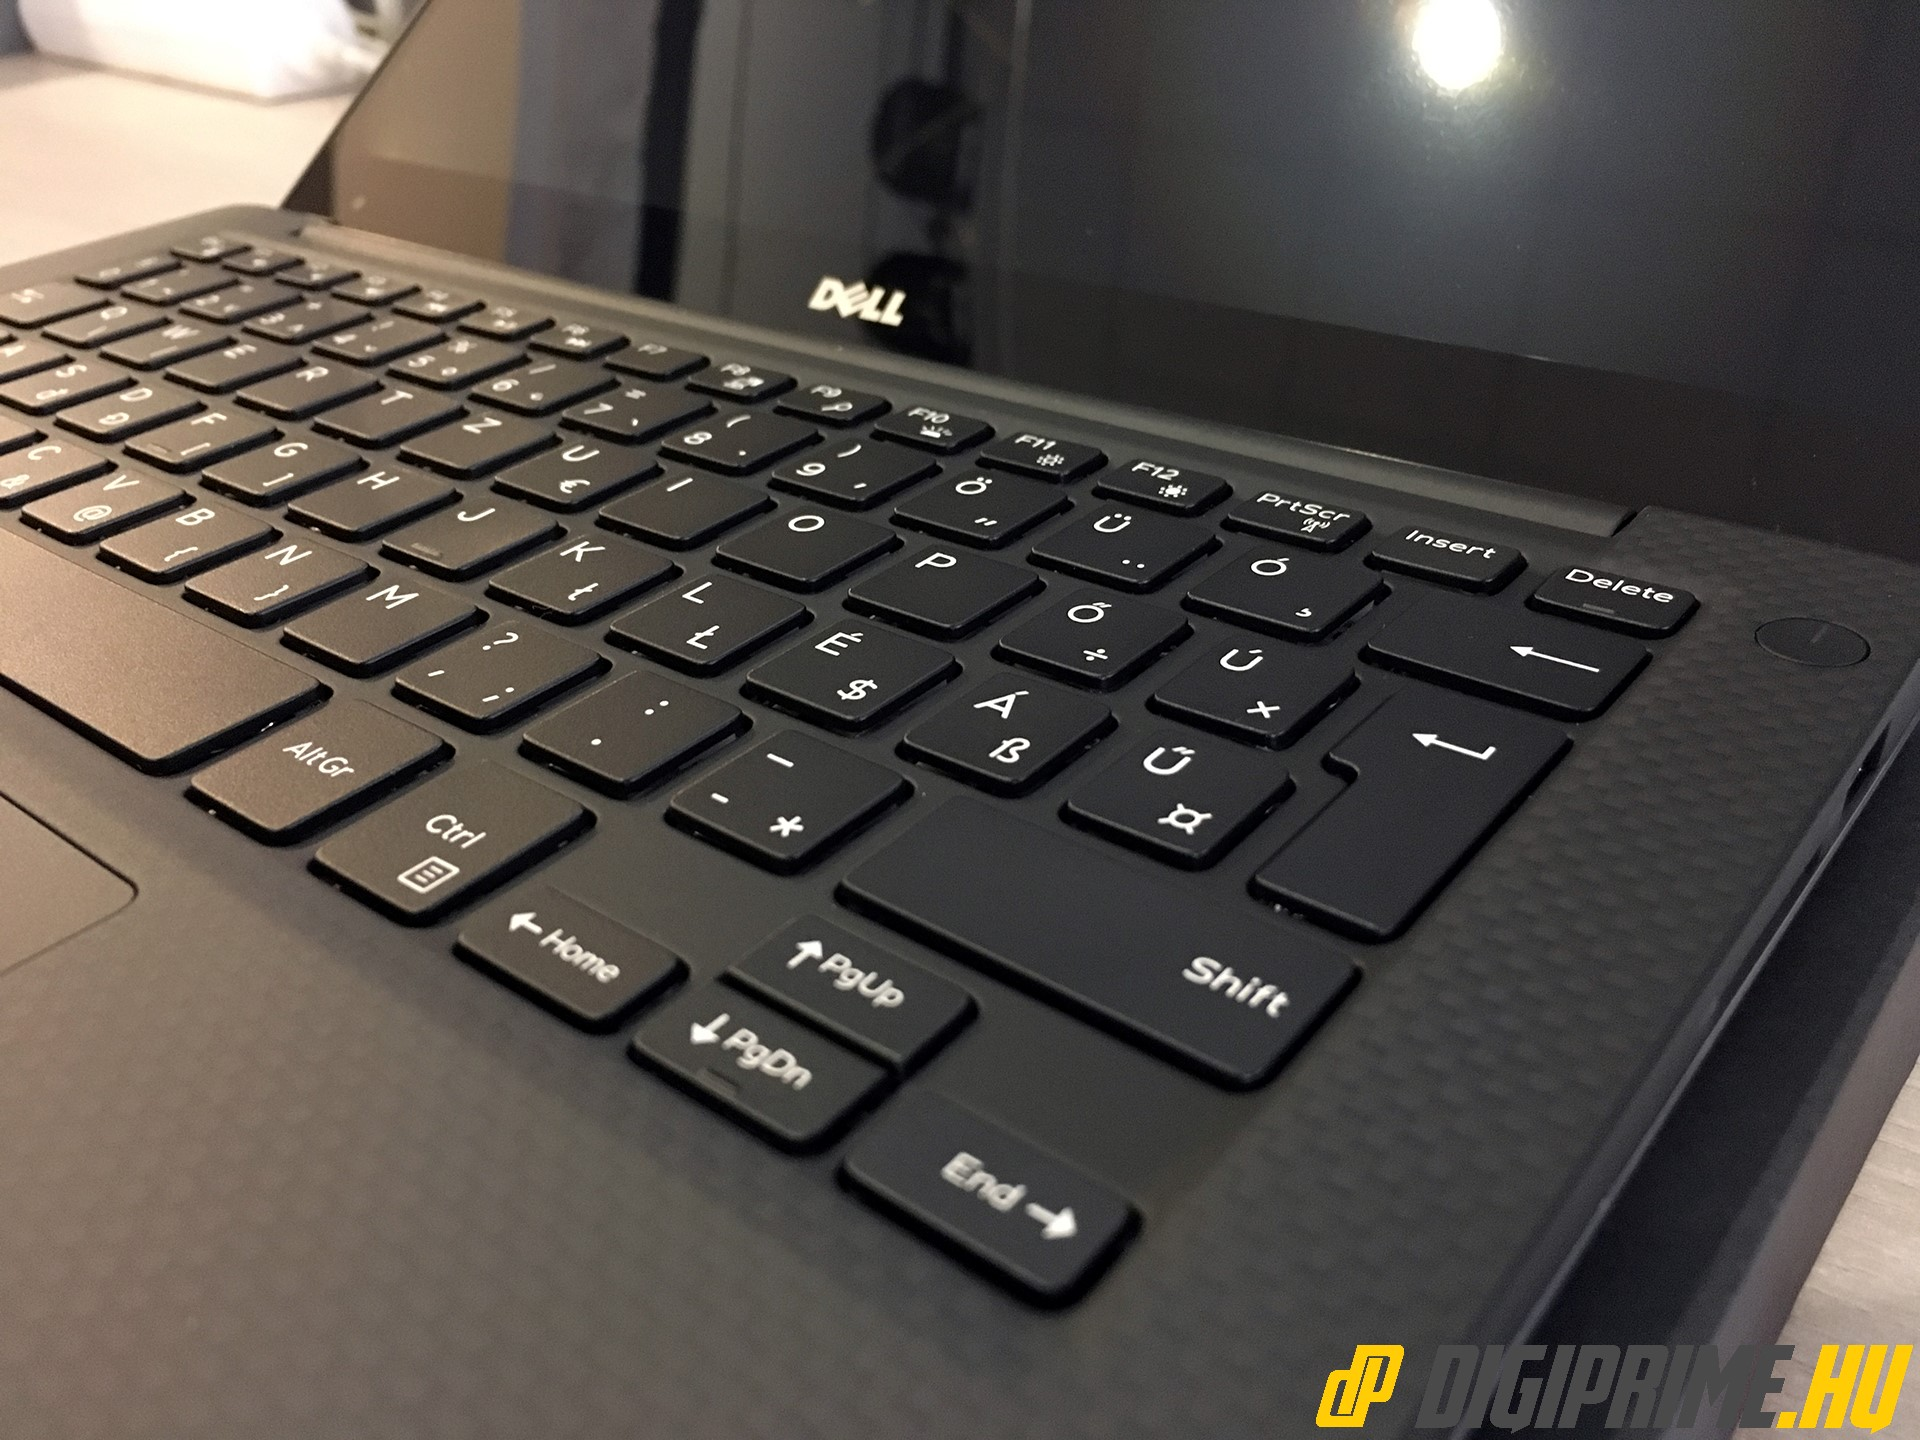 dell xps 13 9360 13 digiprime.hu